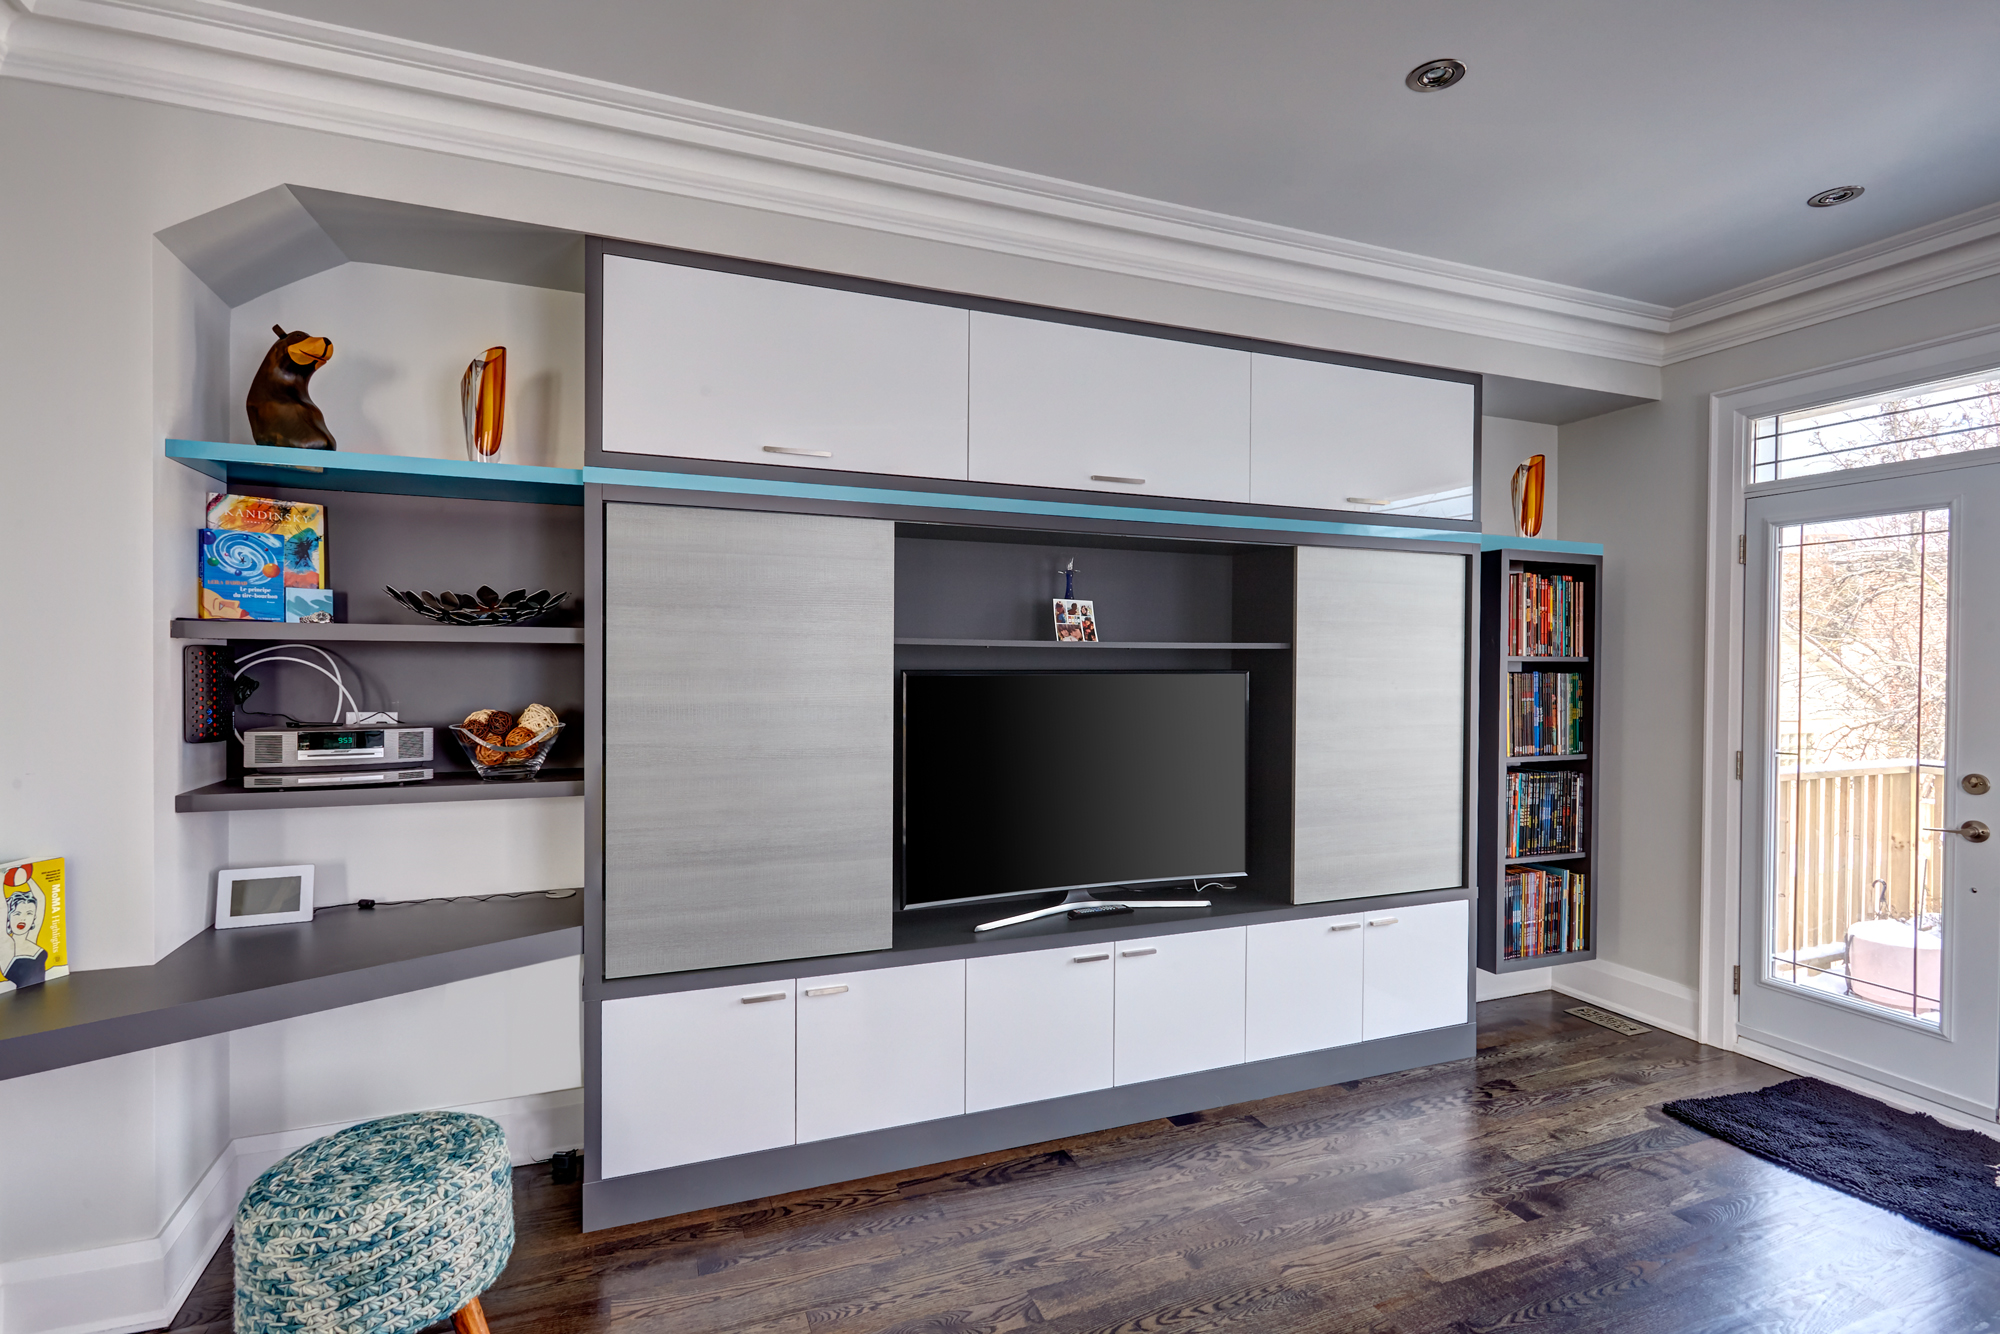 Great wall media center custom cabinet space solutions - Used living room furniture toronto ...